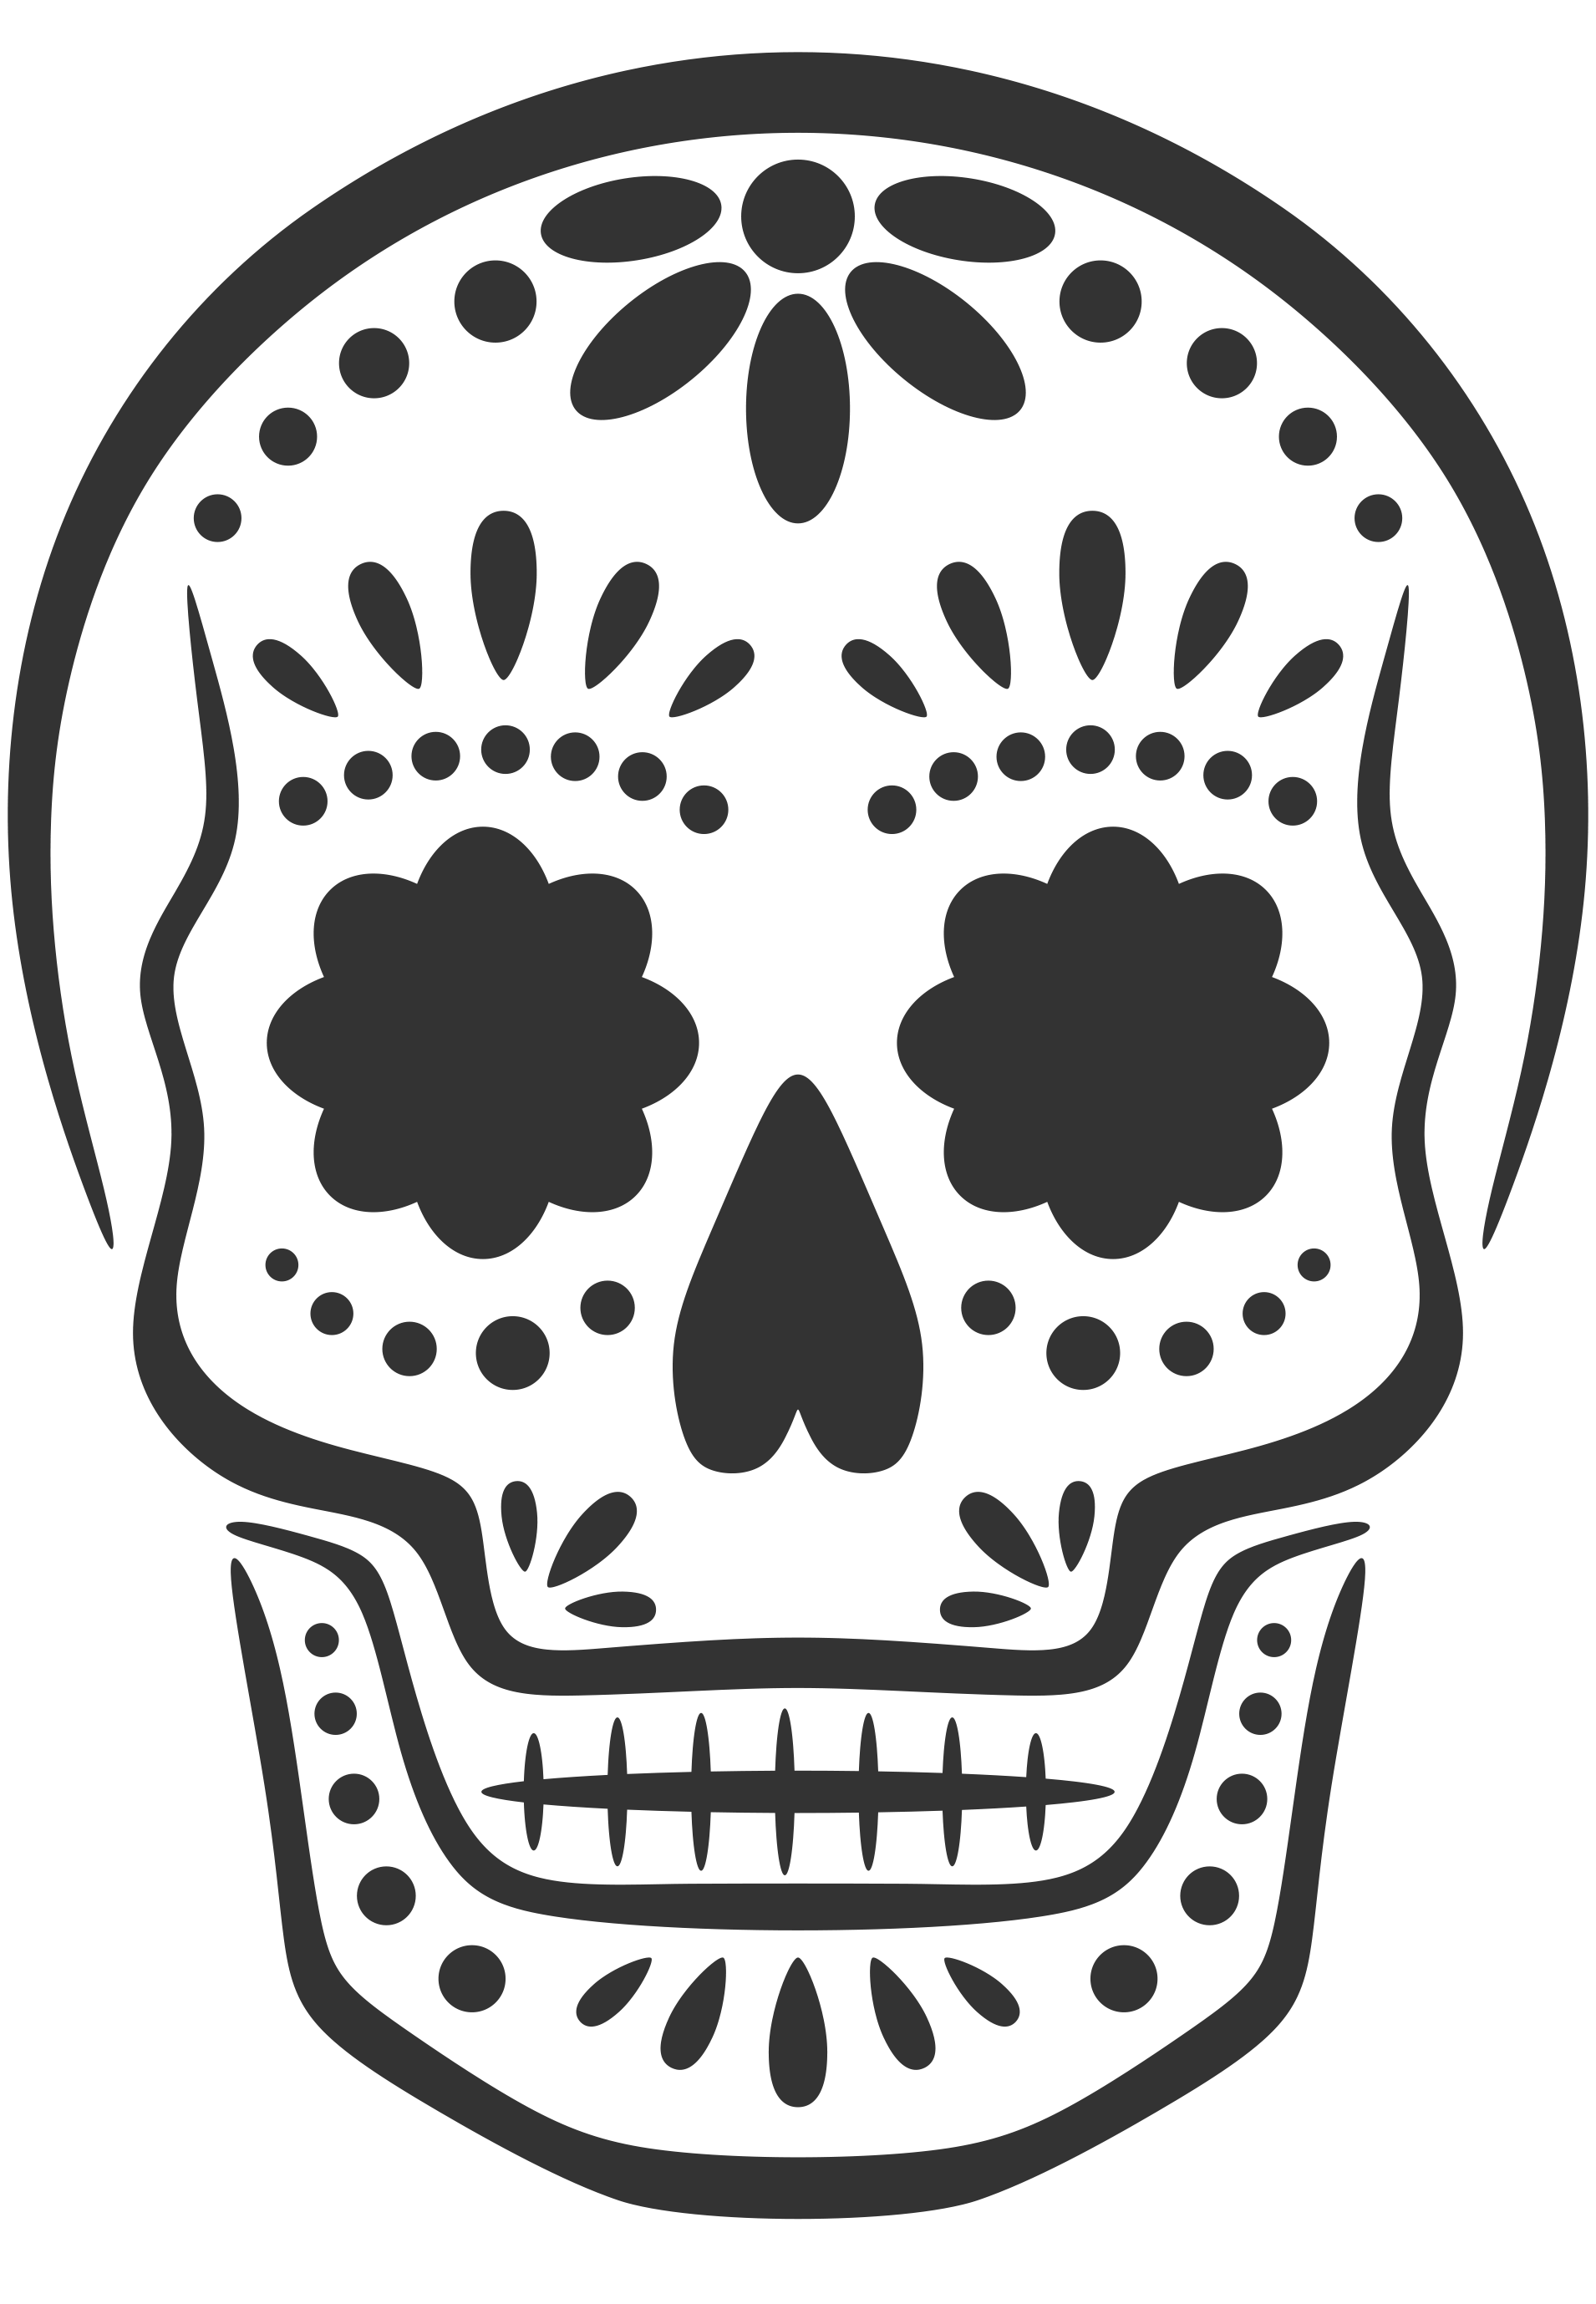 day of the dead template events in louisville ky republic bank first friday hop dead day the template of